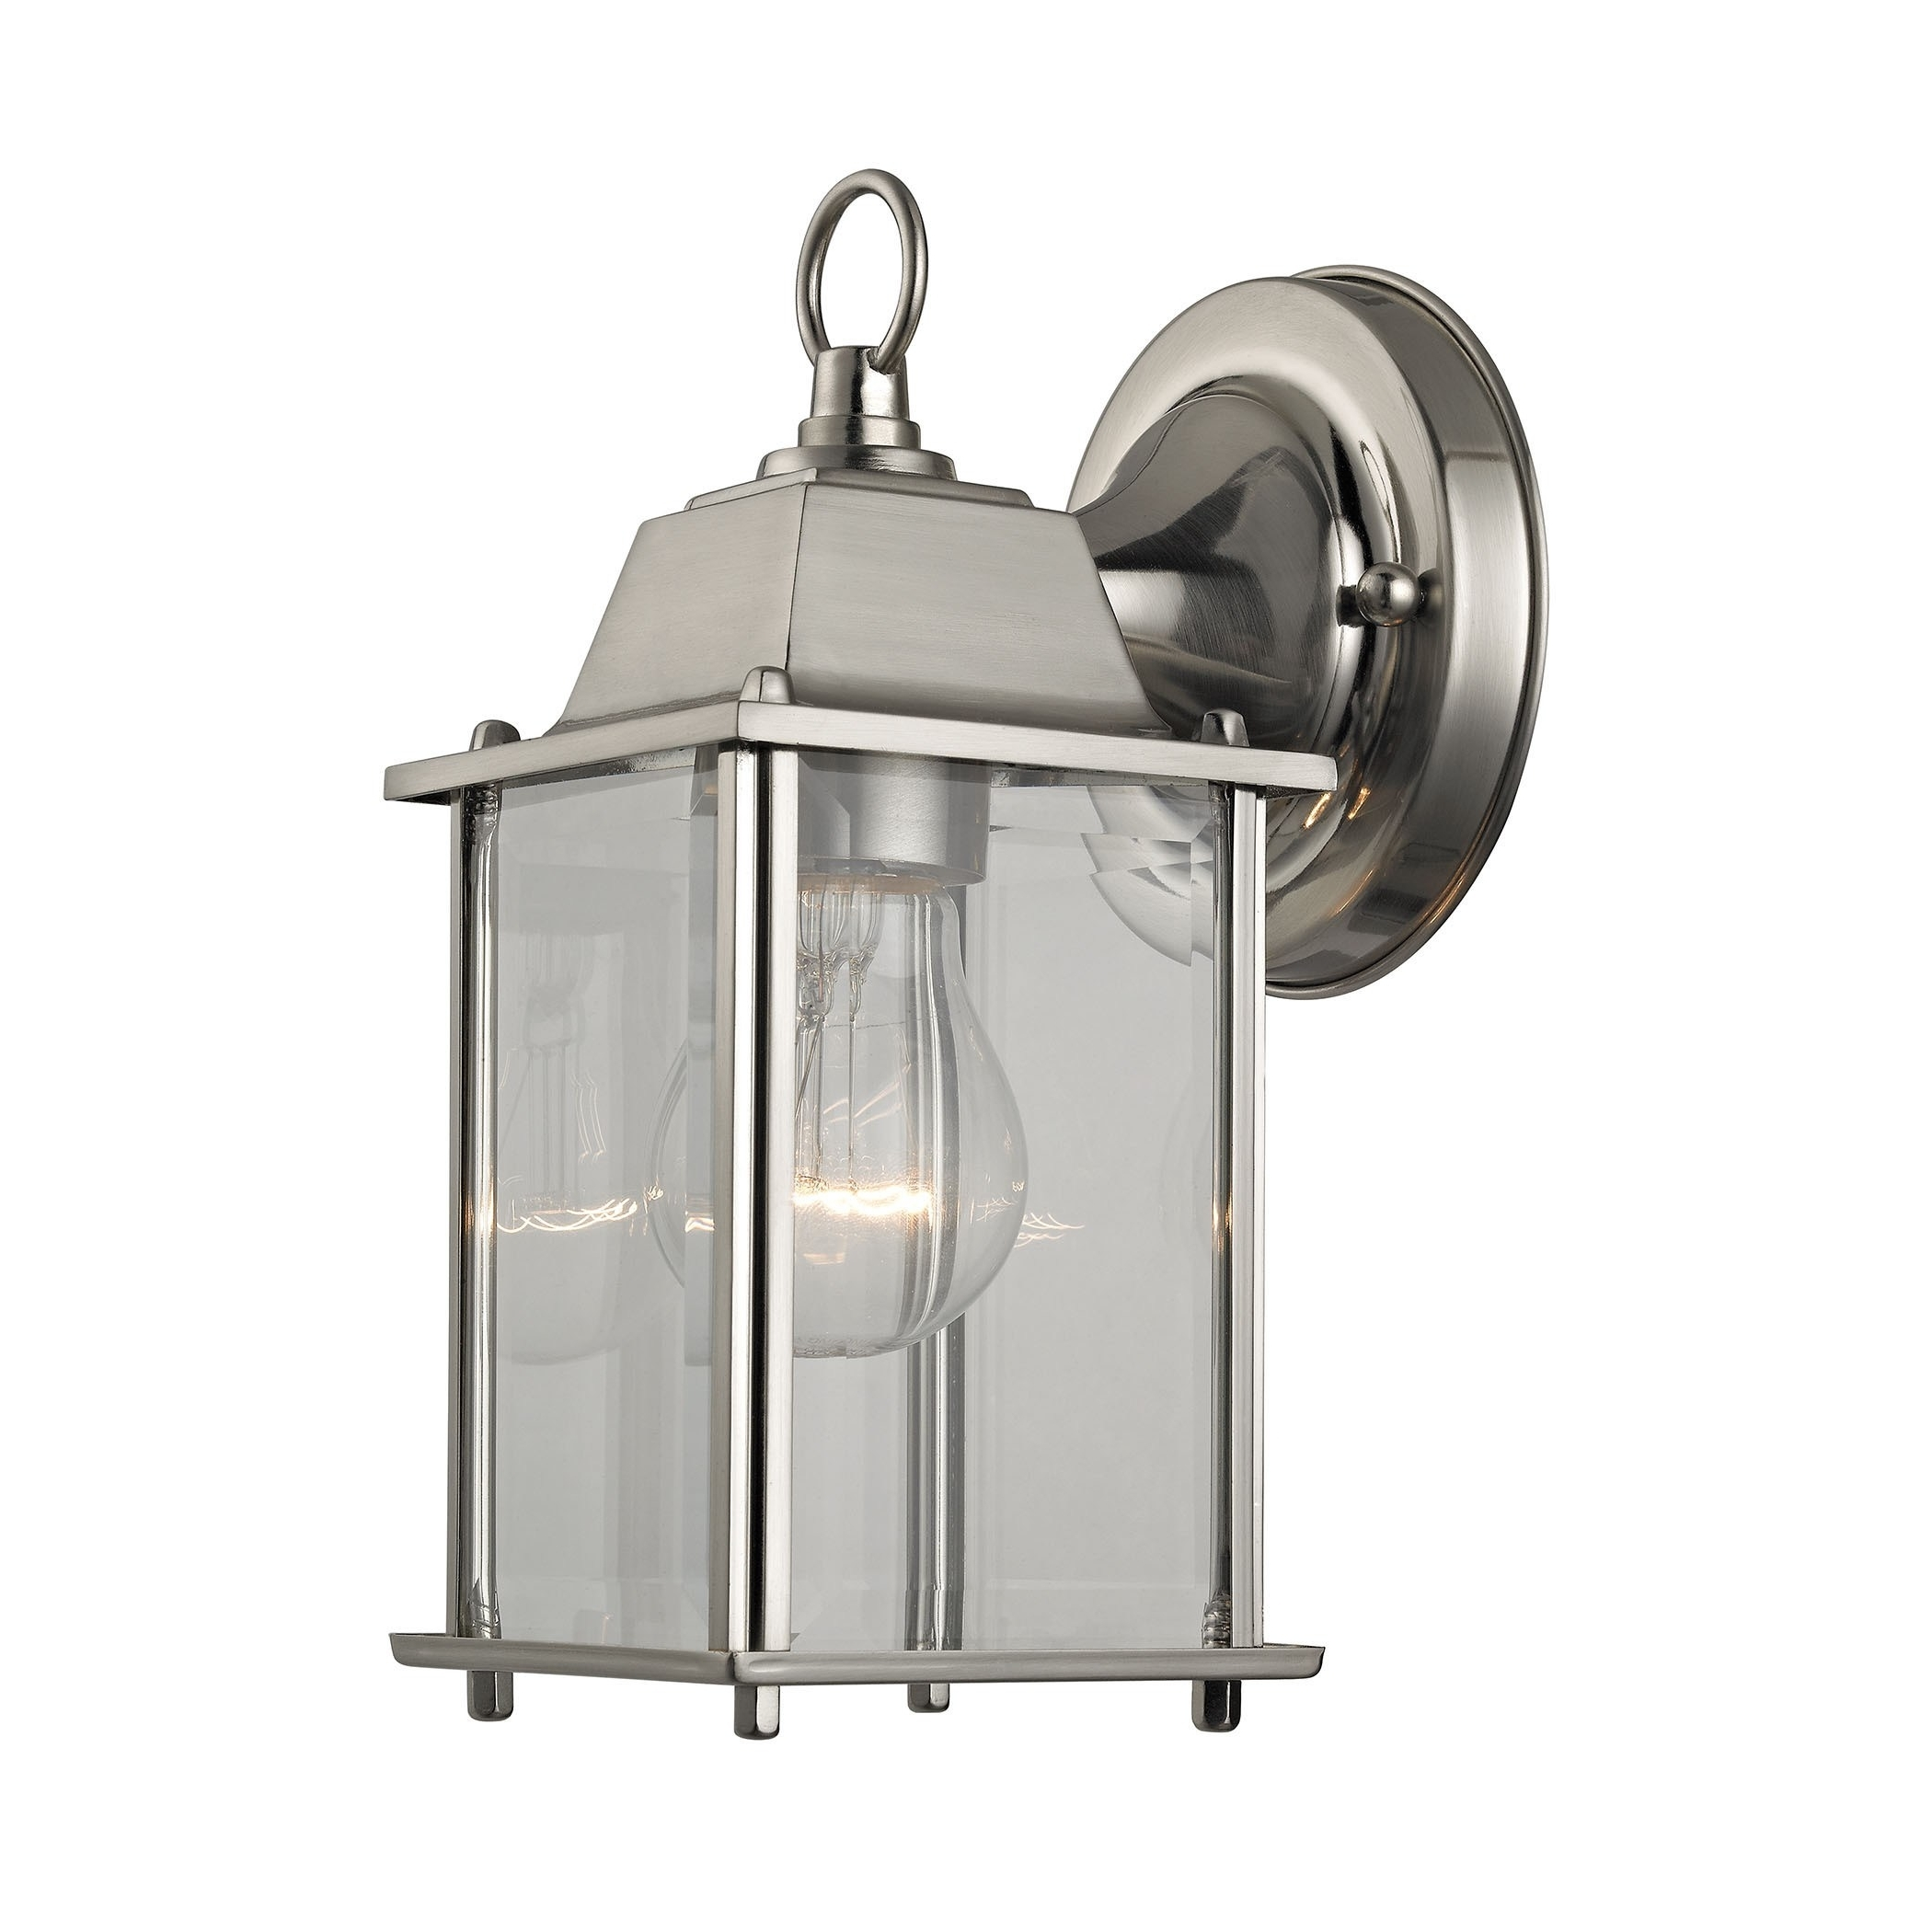 Brushed Nickel Outdoor Wall Lighting Regarding Widely Used Cornerstone (View 16 of 20)